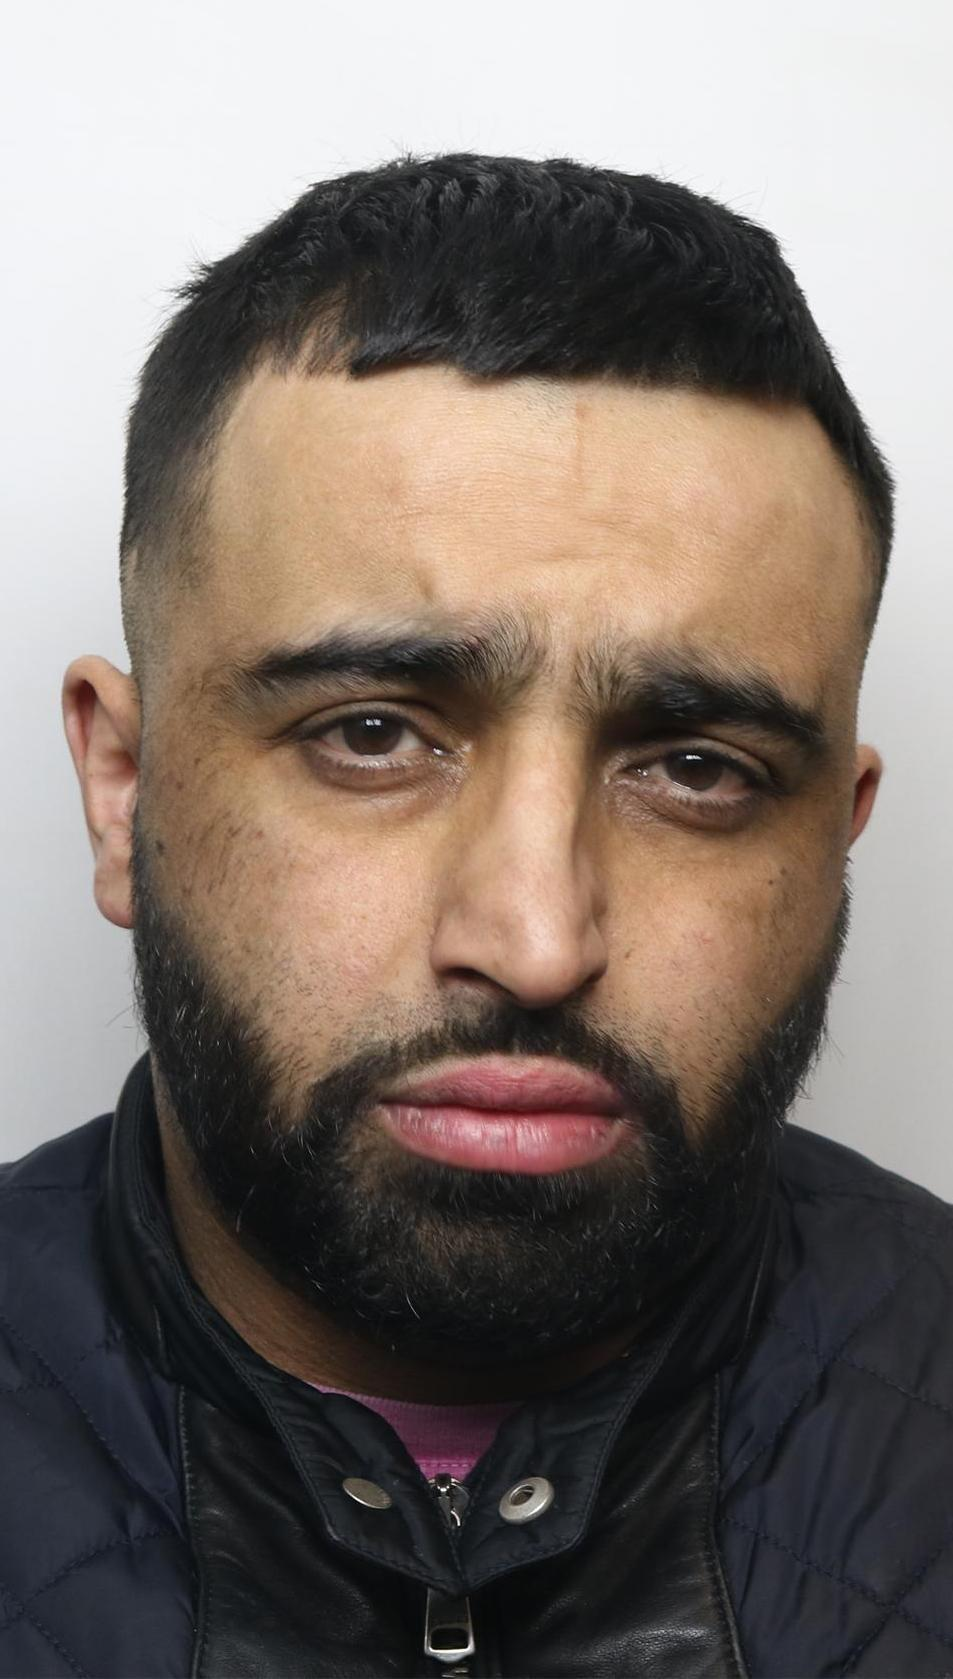 Imran Khaliq, 39, who was given a 12-year jail term in his absence at Bradford Crown Court